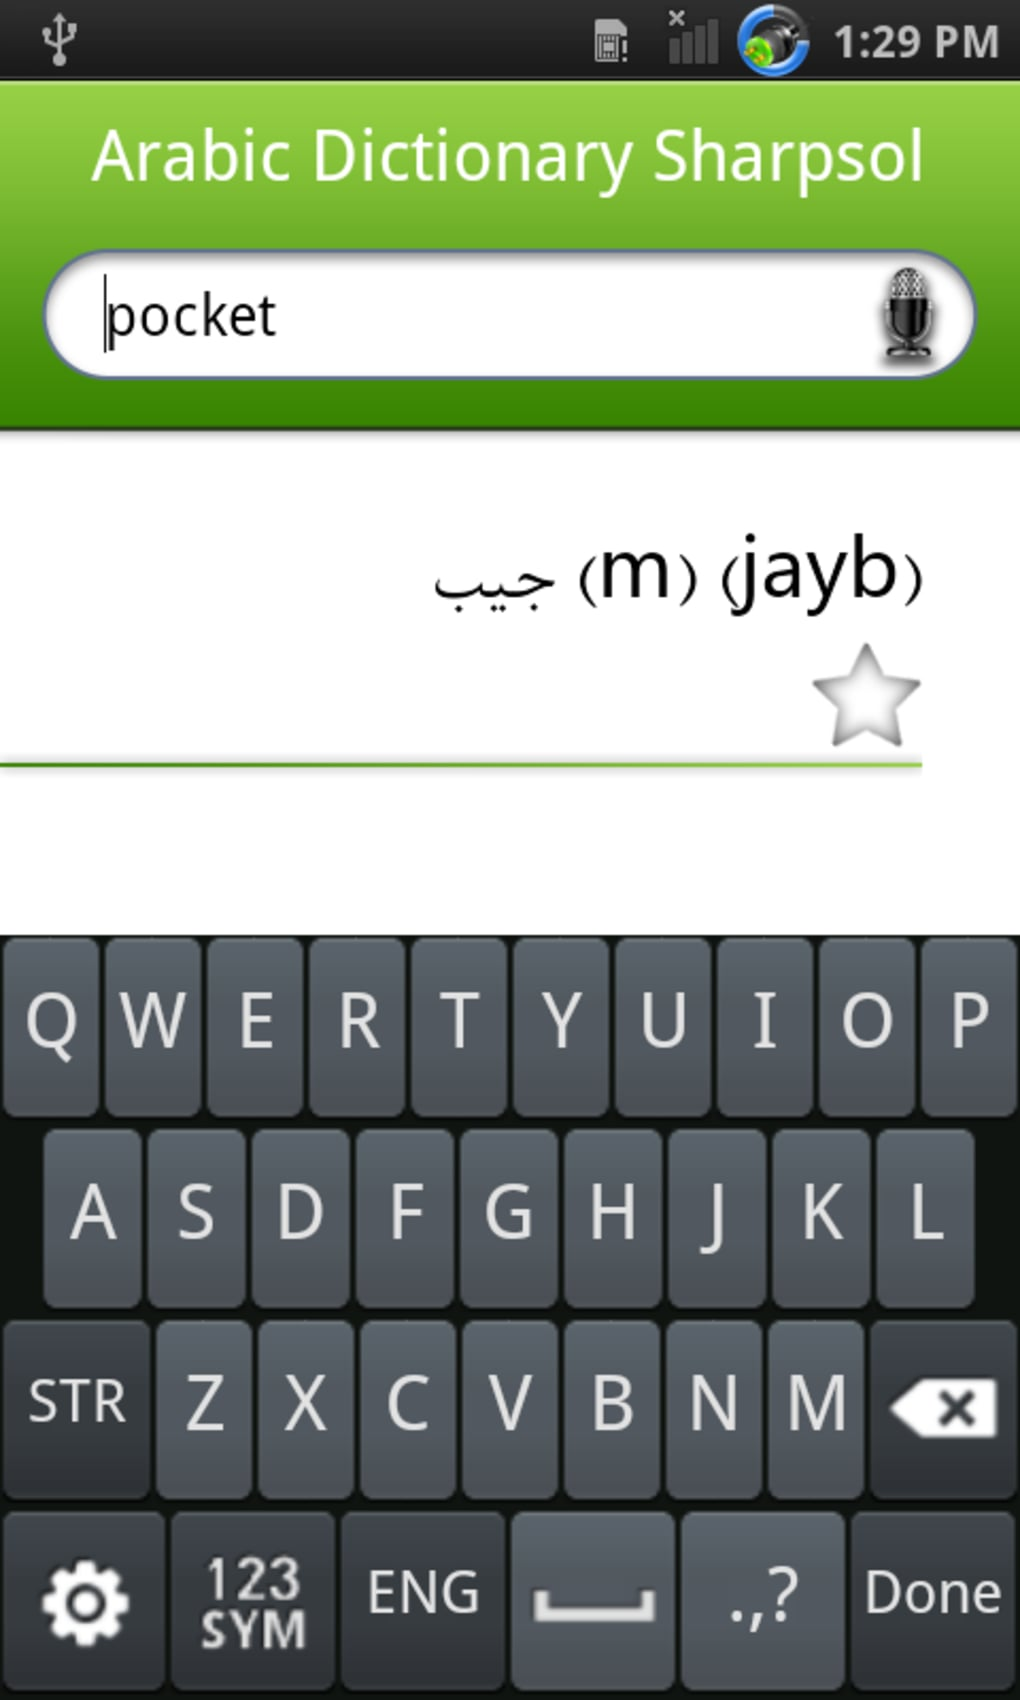 English Arabic Dictionary Free APK for Android - Download